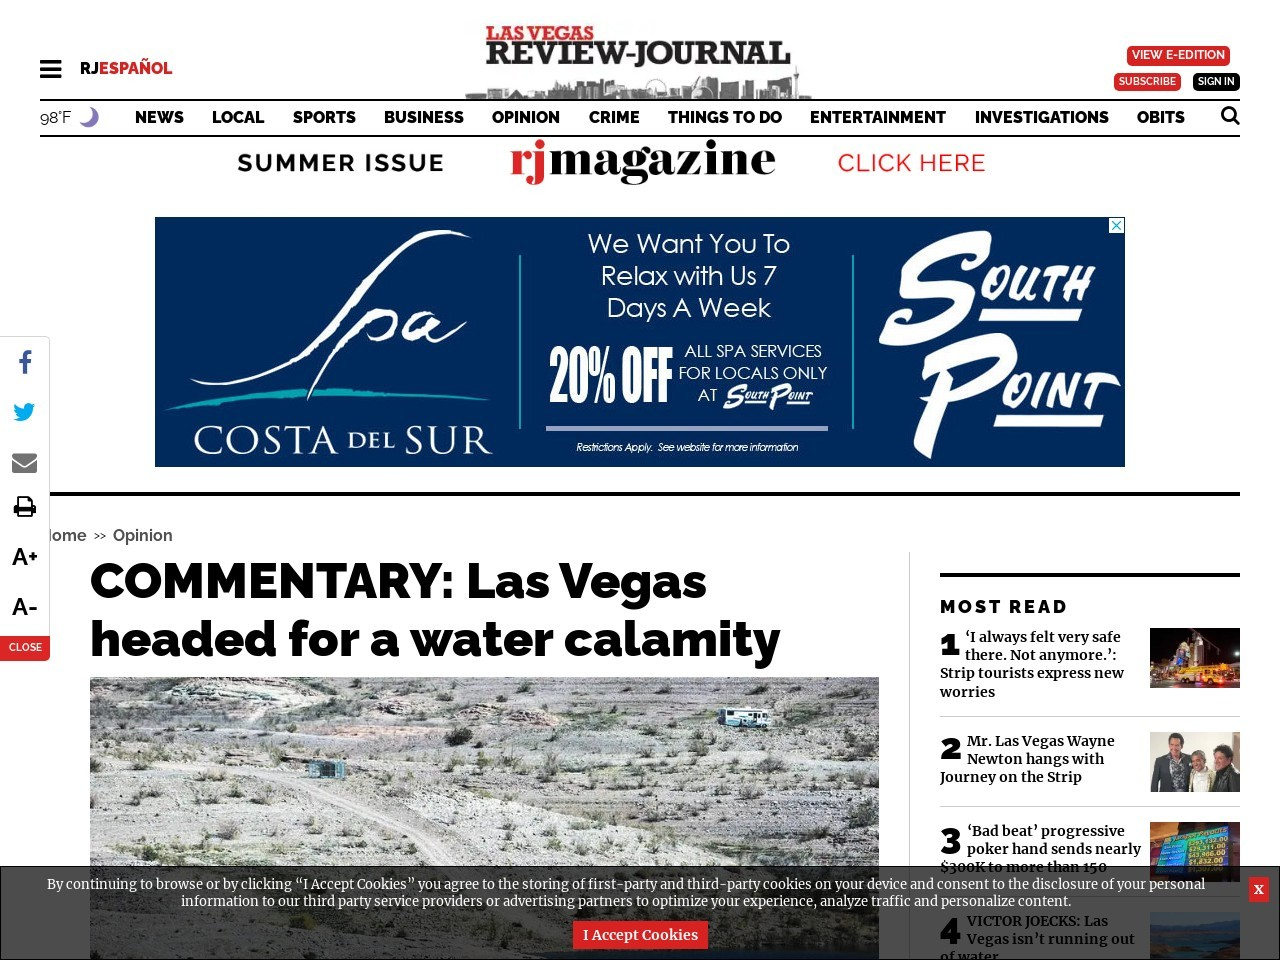 COMMENTARY: Las Vegas headed for a water calamity